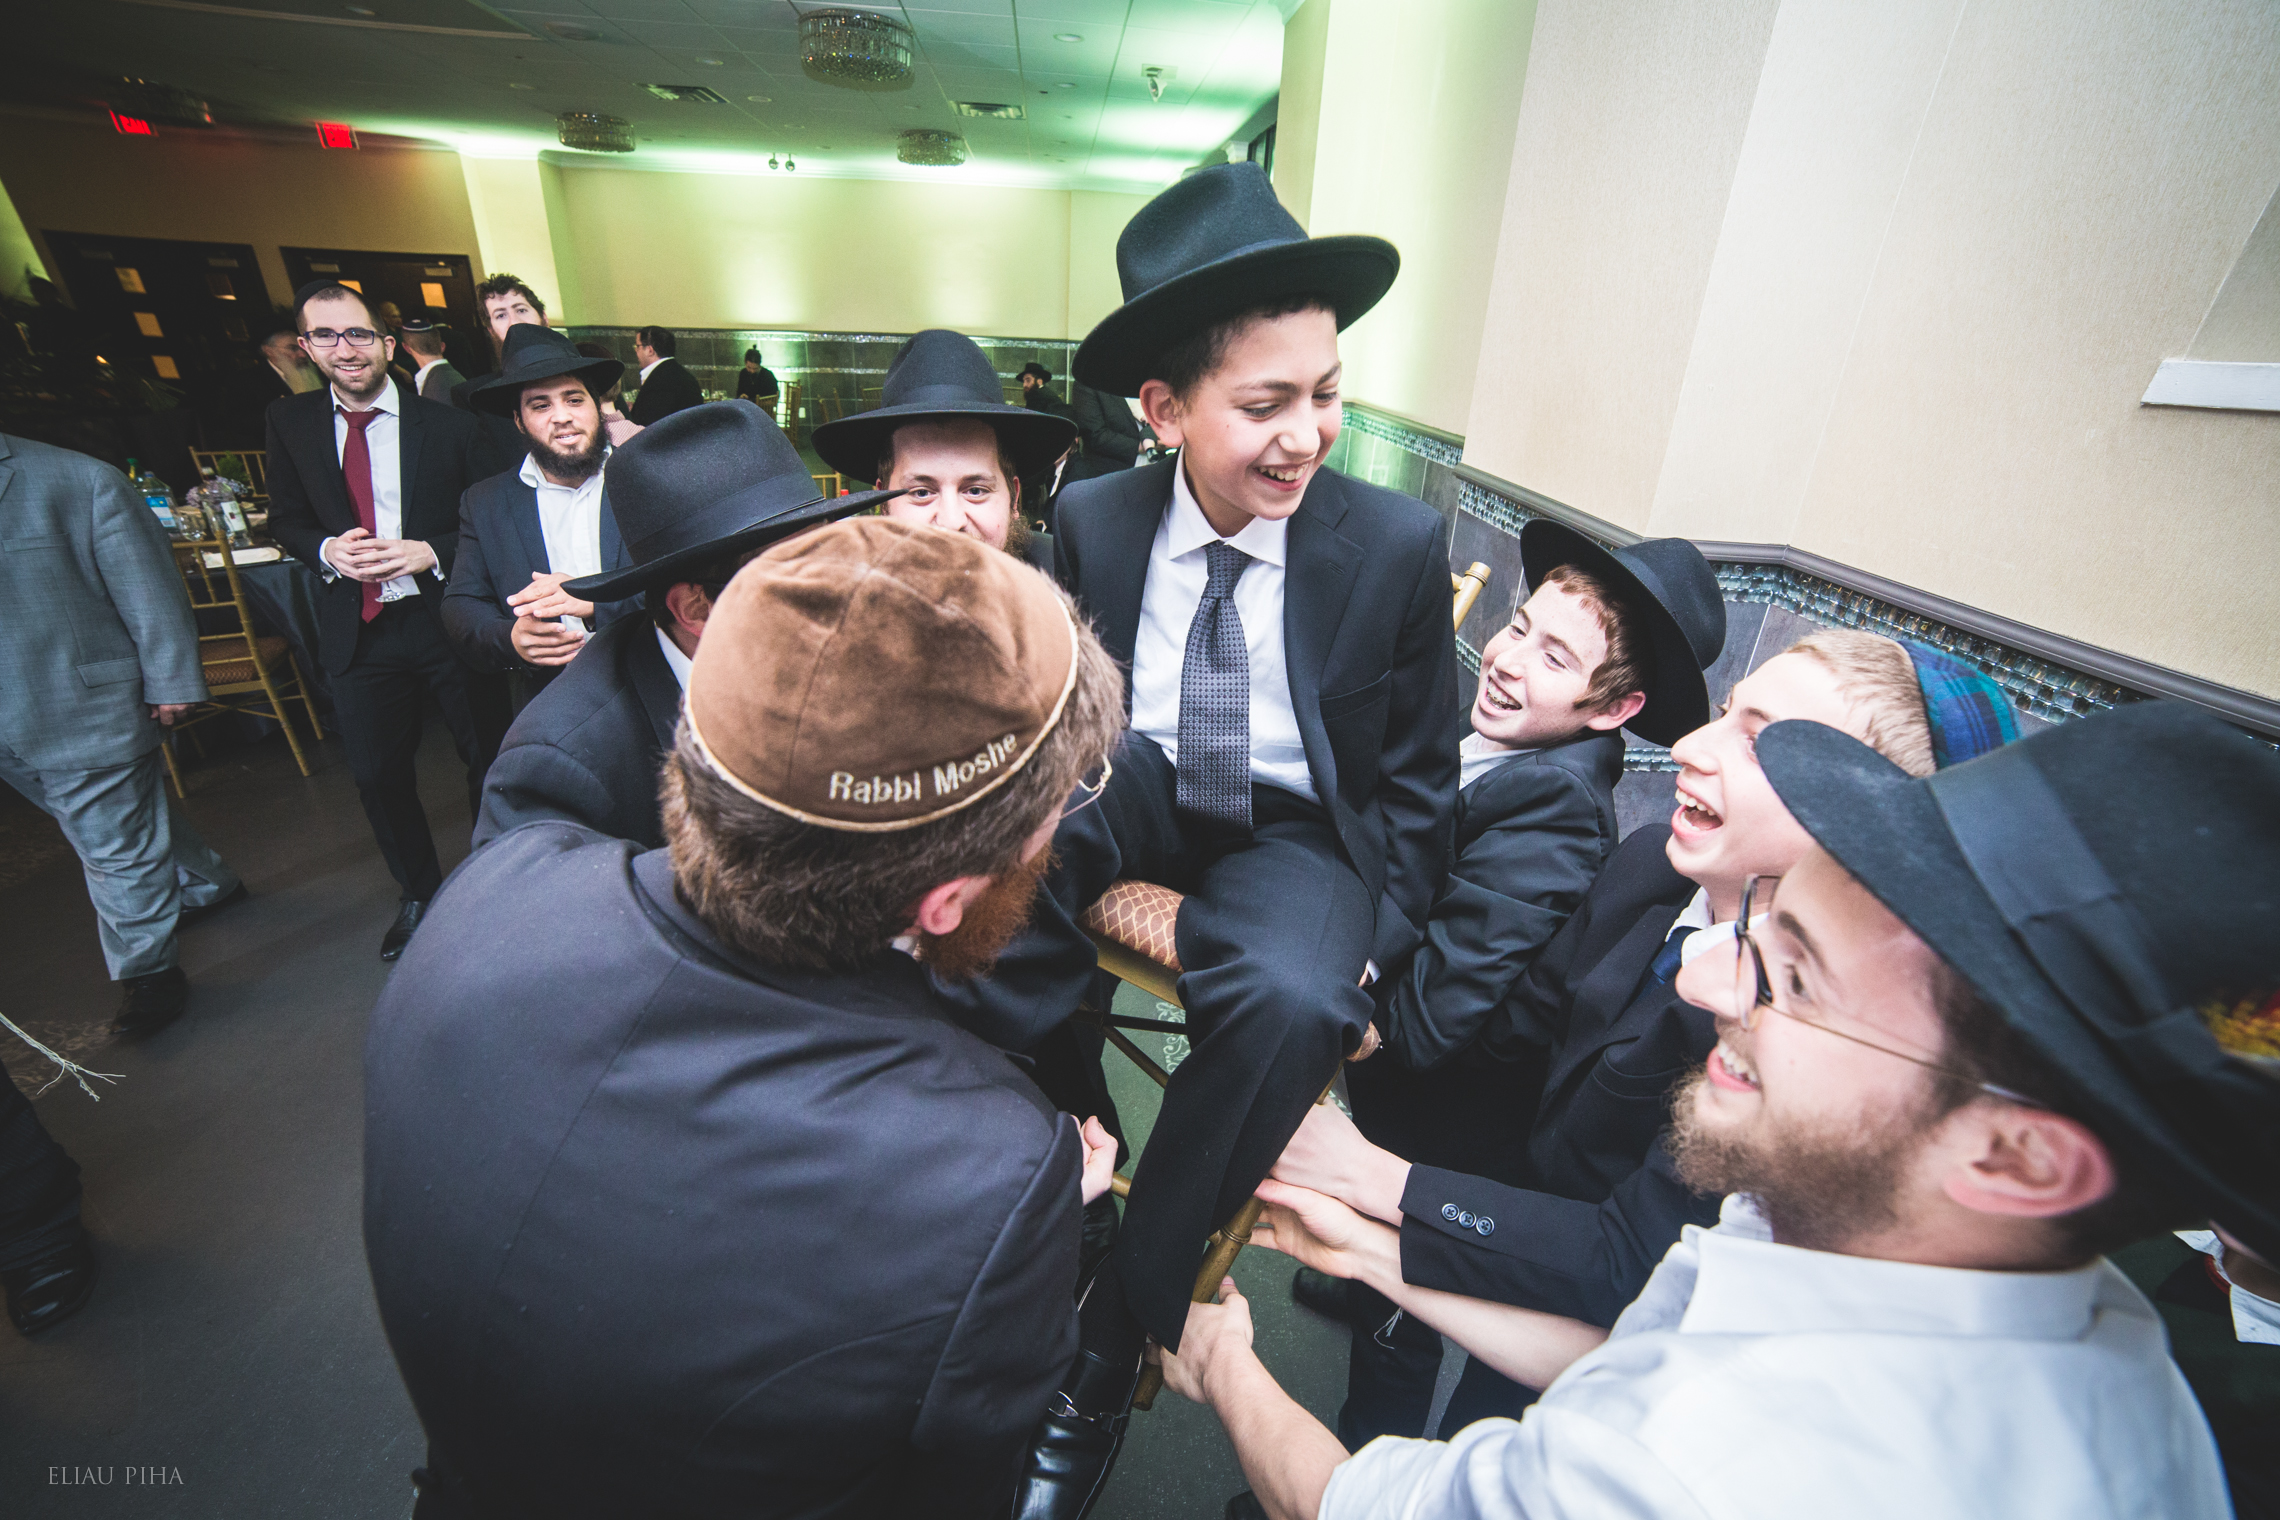 Bar-Mitzvah Levi Meer | Piha studio photography, new york, events, -7.jpg-08.jpg